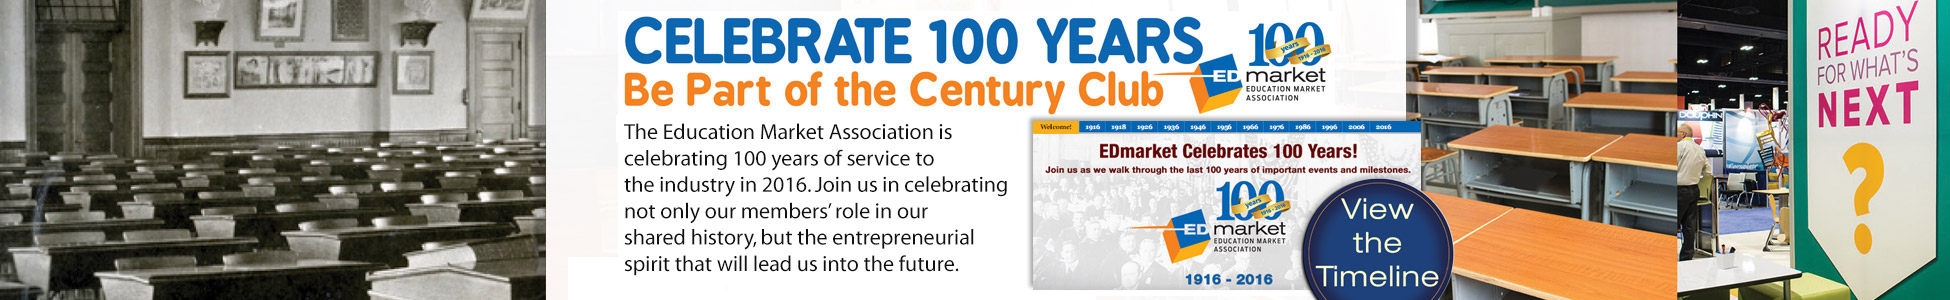 Be a Part of EDmarket's Century Club